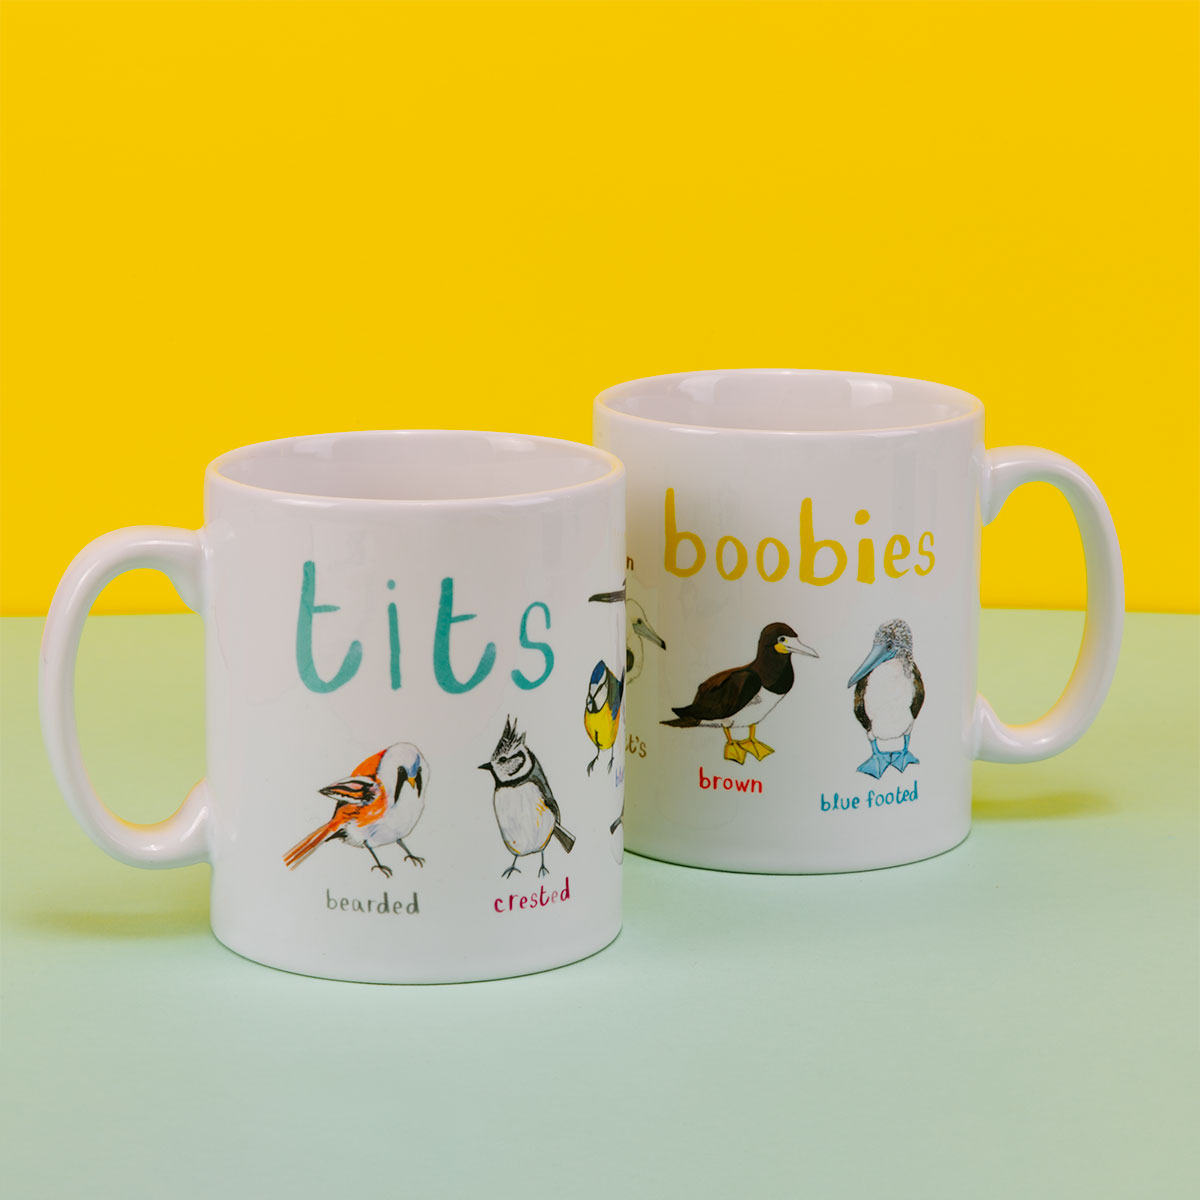 25 x Full Colour Mugs for £99